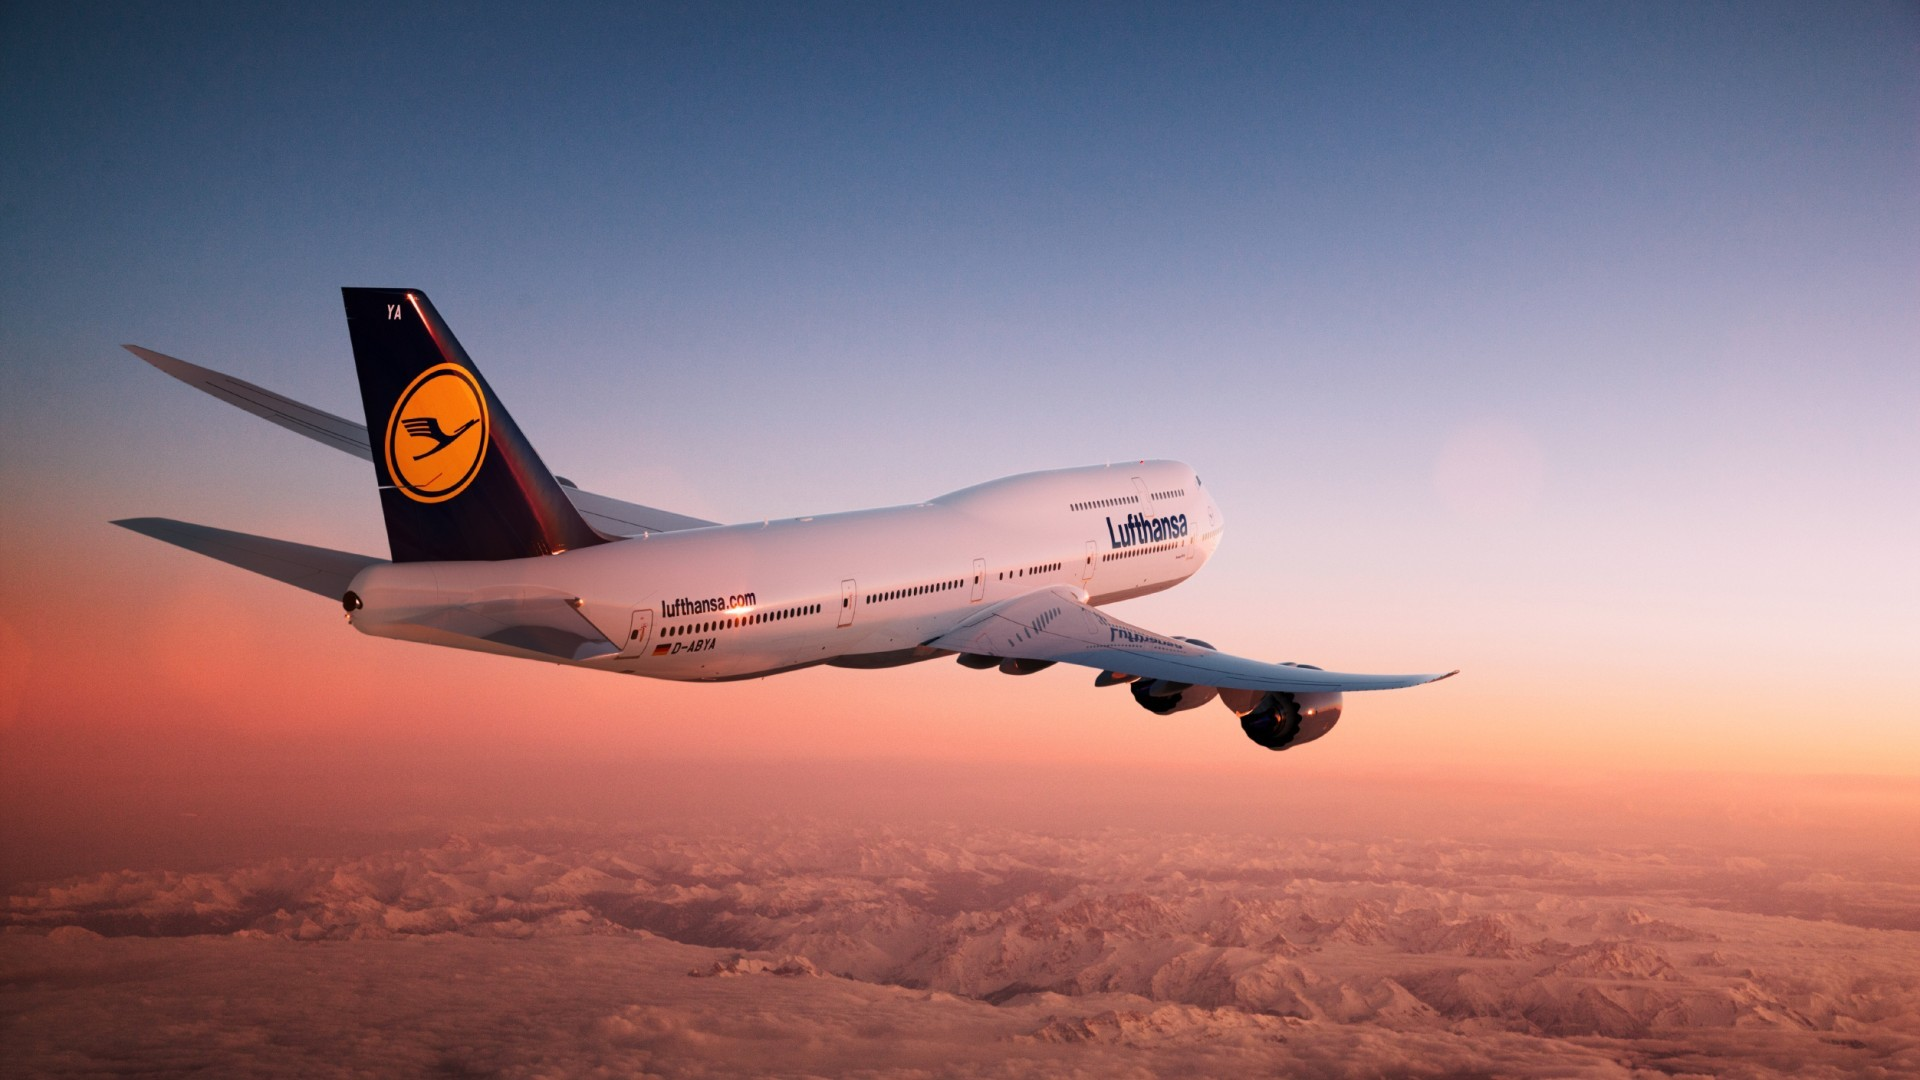 Os X Wallpapers Hd 1920x1080 Lufthansa Boeing 747 8i At Sunset Desktop Pc And